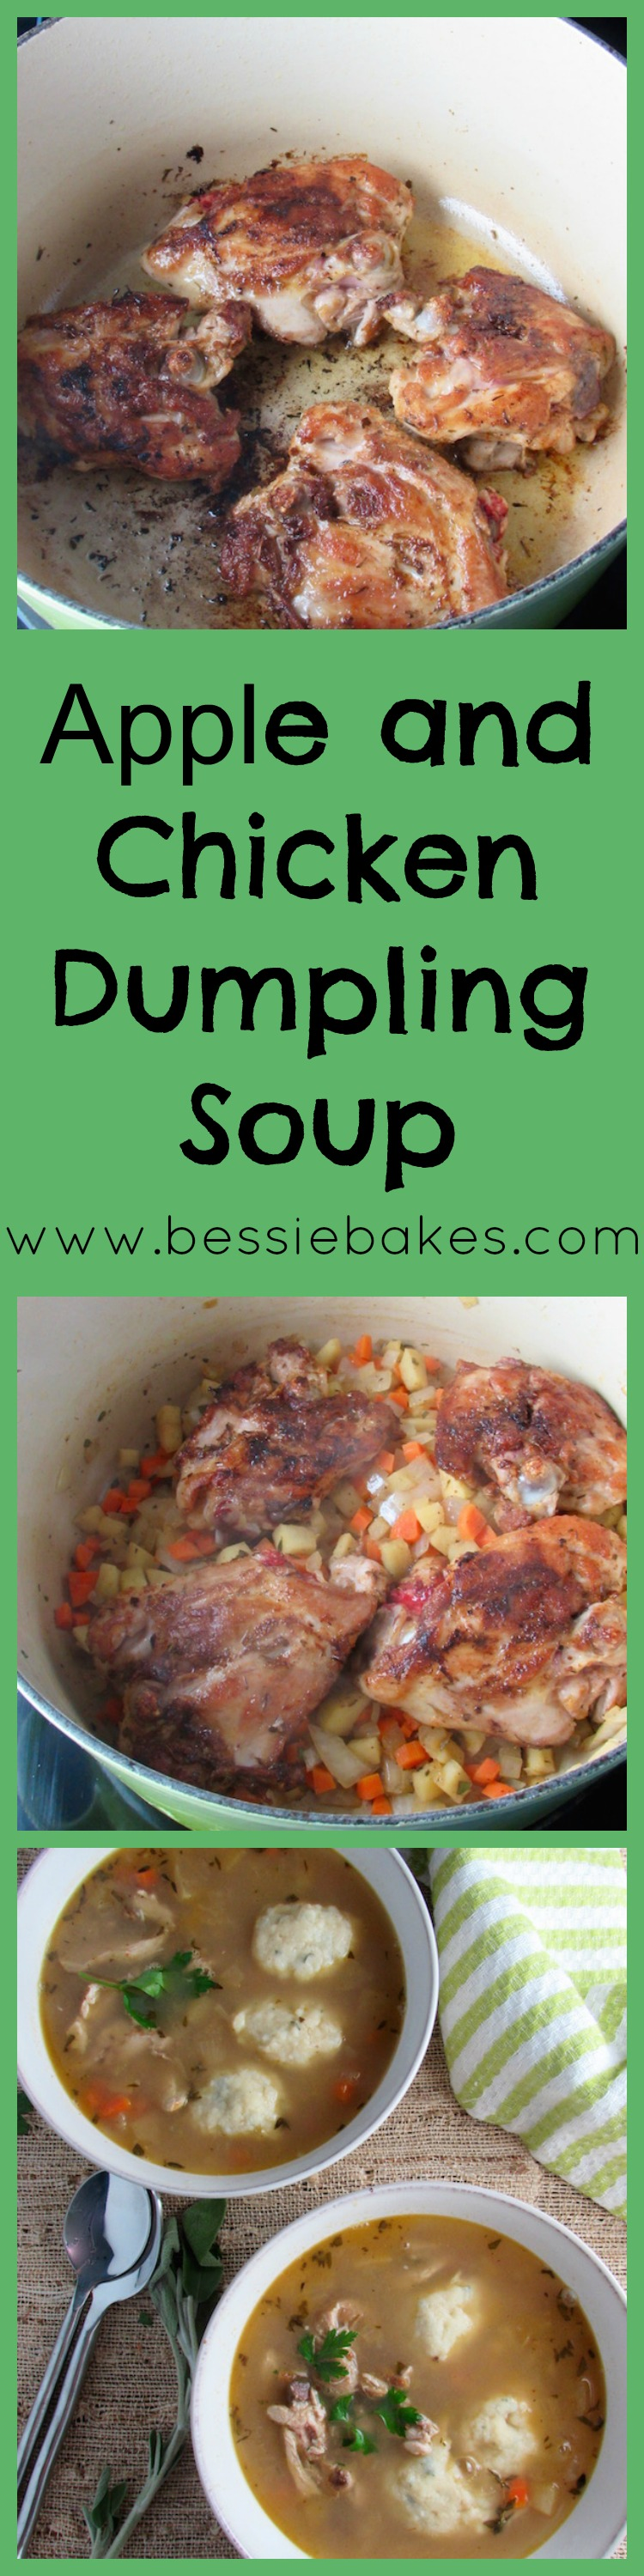 Apple and Chicken Dumpling Soup Pinterest